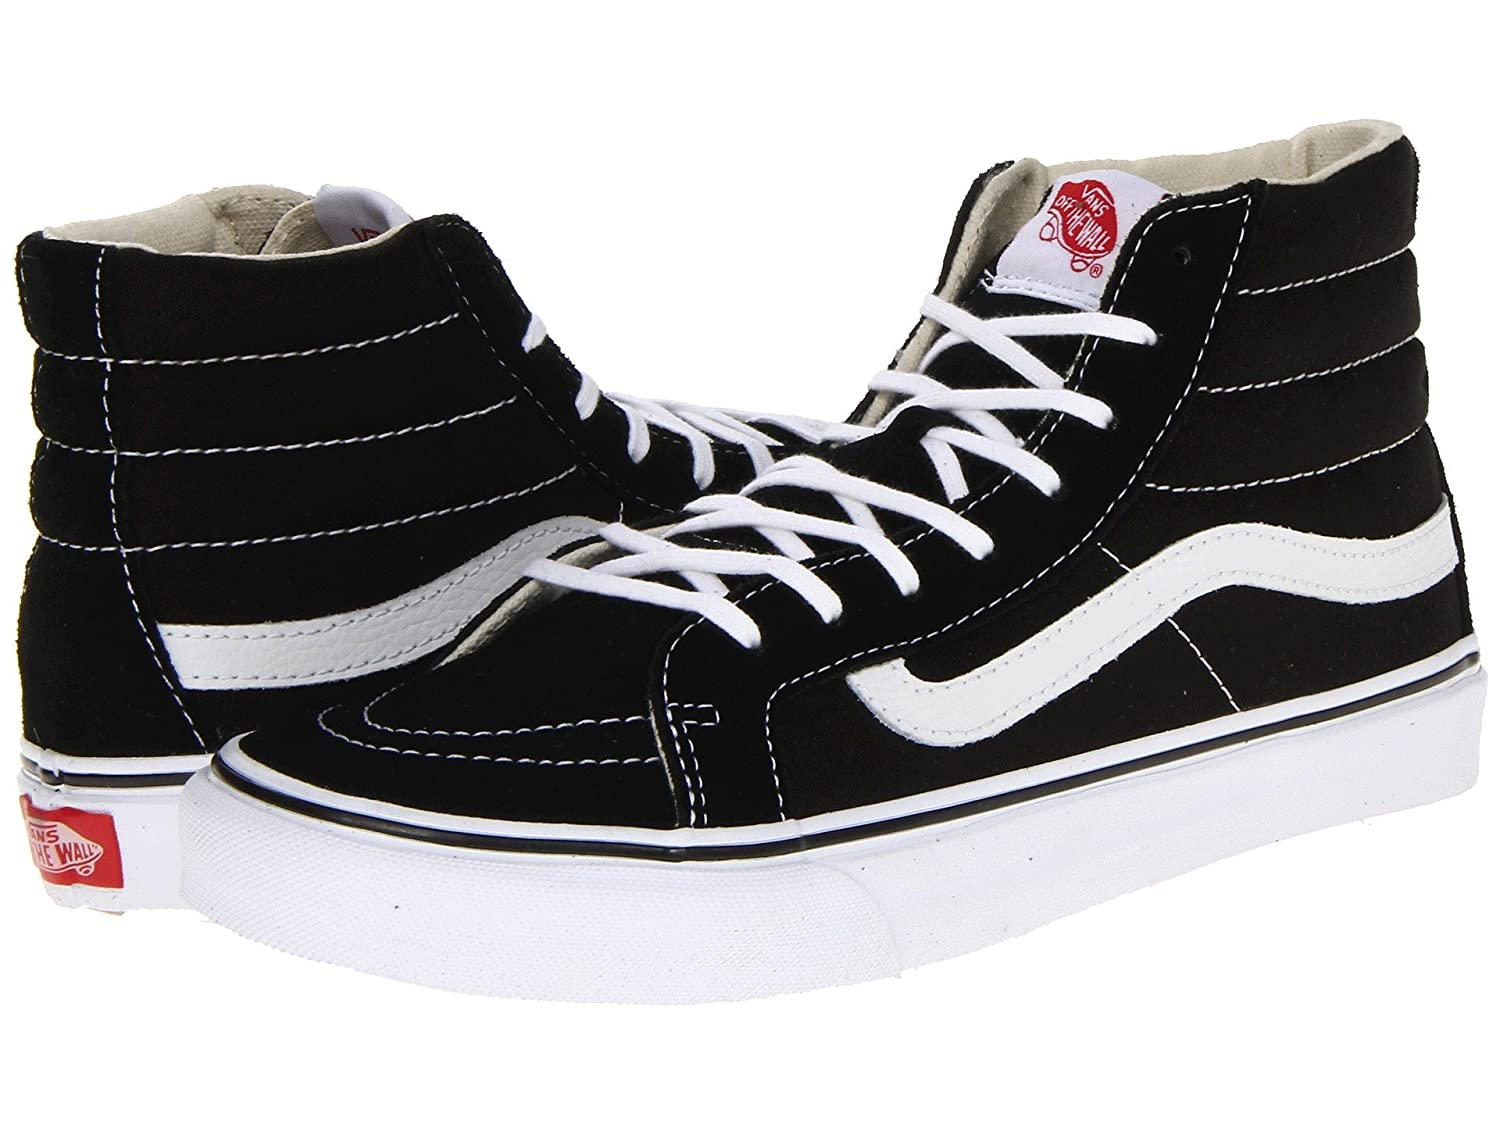 Vans Sk8-Hi Unisex Casual High-Top Skate Shoes, Comfortable and Durable in Signature Waffle Rubber Sole B07DN4CC72 42 M EU / 10.5 B(M) US Women / 9 D(M) US Men|Black/White Canvas